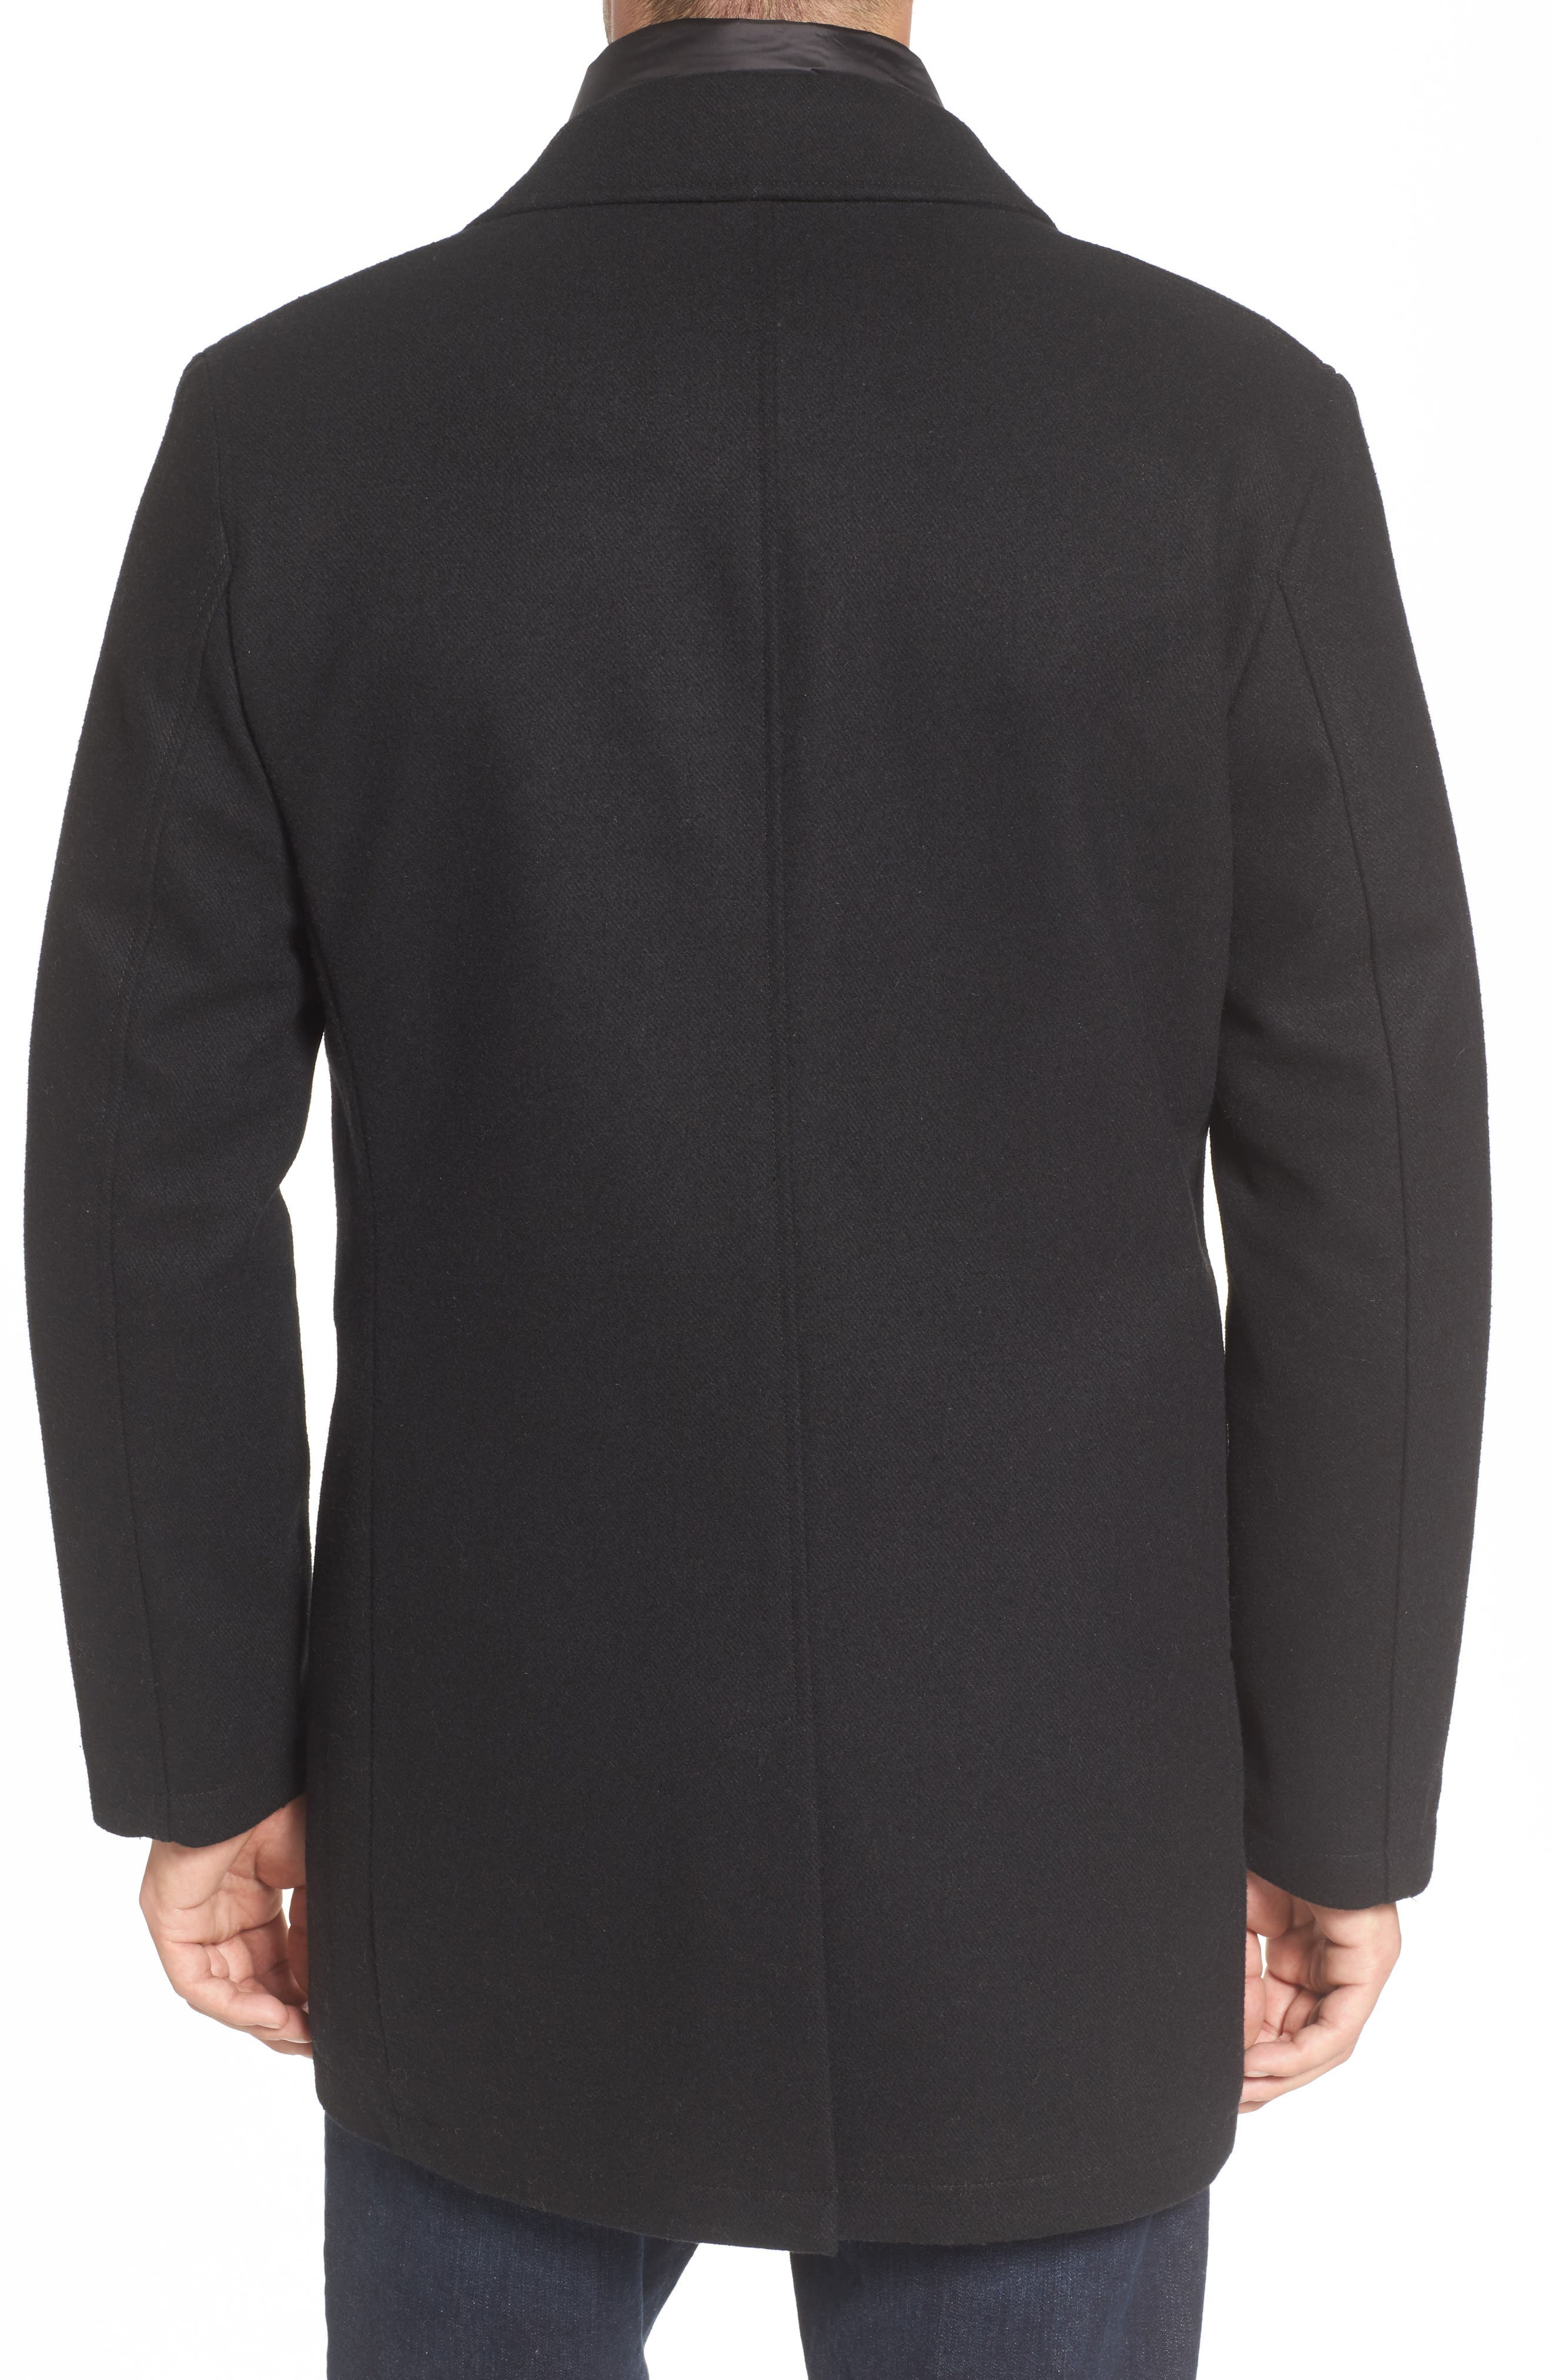 Alternate Image 2  - Cole Haan Water Repellent Jacket with Inset Bib & Faux Fur Lining